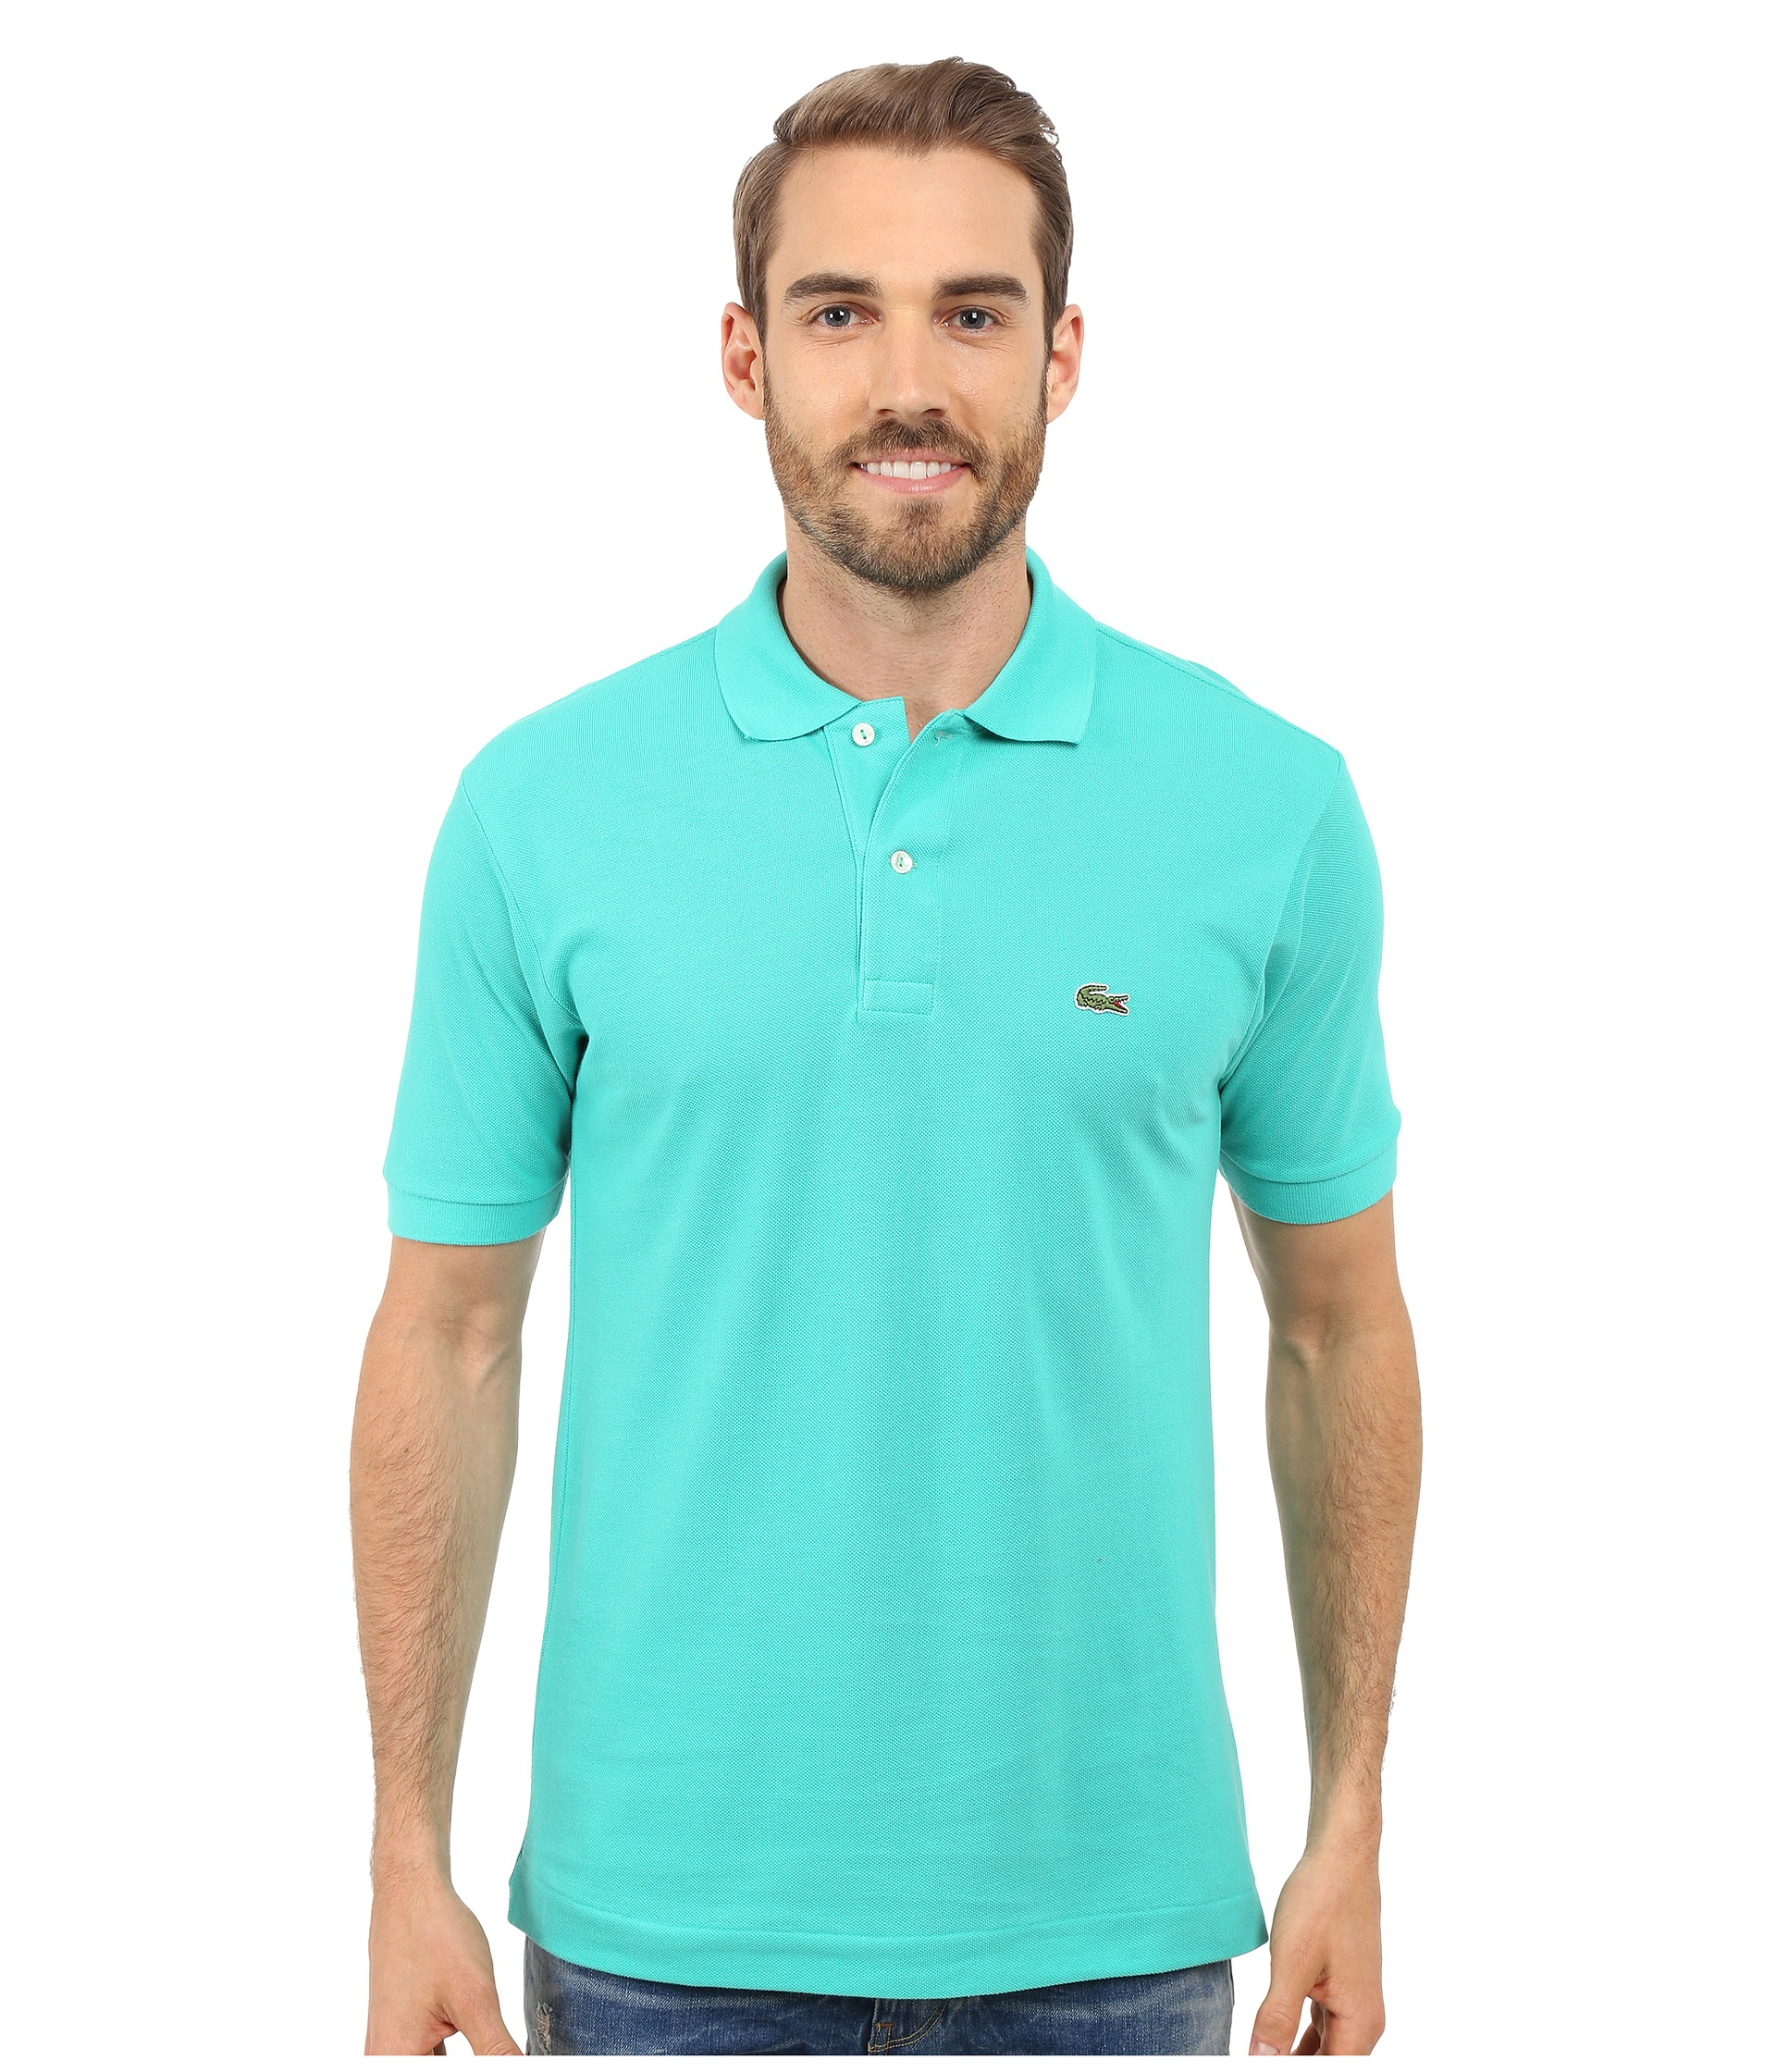 a1b8f70f Lacoste L1212 Classic Pique Polo Shirt in Green for Men - Lyst